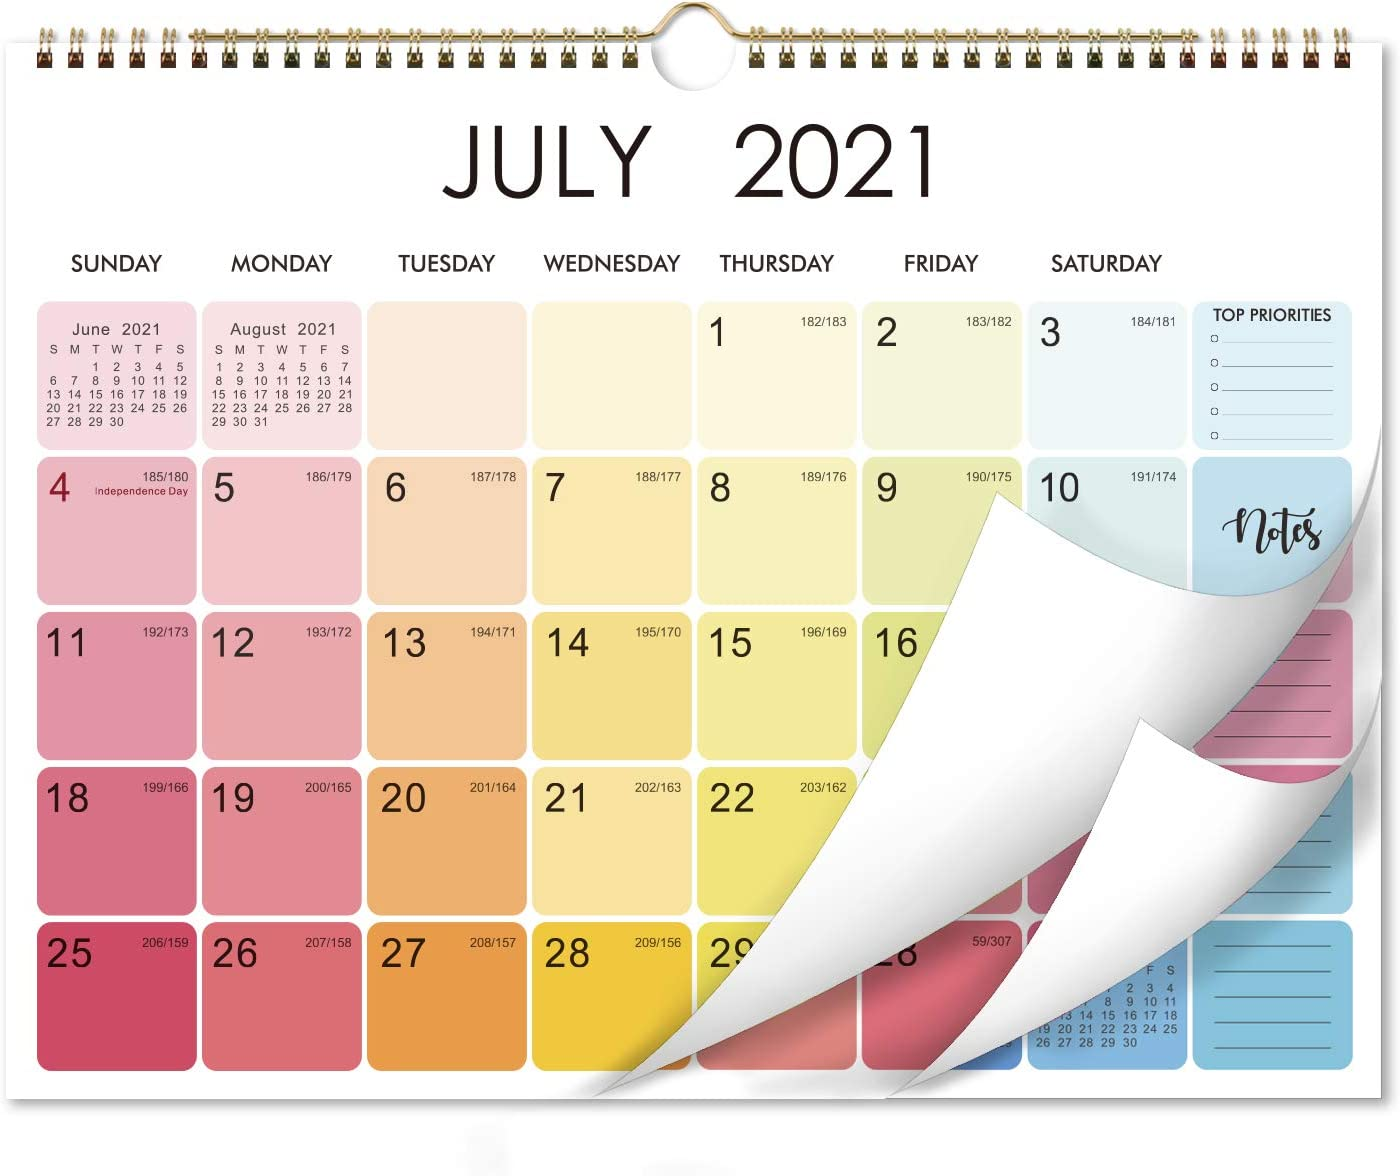 Us Shopping Sales Calendar 2022.Amazon Com 2021 2022 Calendar 18 Monthly Wall Calendar With Thick Paper 15 X 11 5 Jul 2021 Dec 2022 Two Wire Binding Blank Blocks With Julian Dates Hanging Loop Office Products